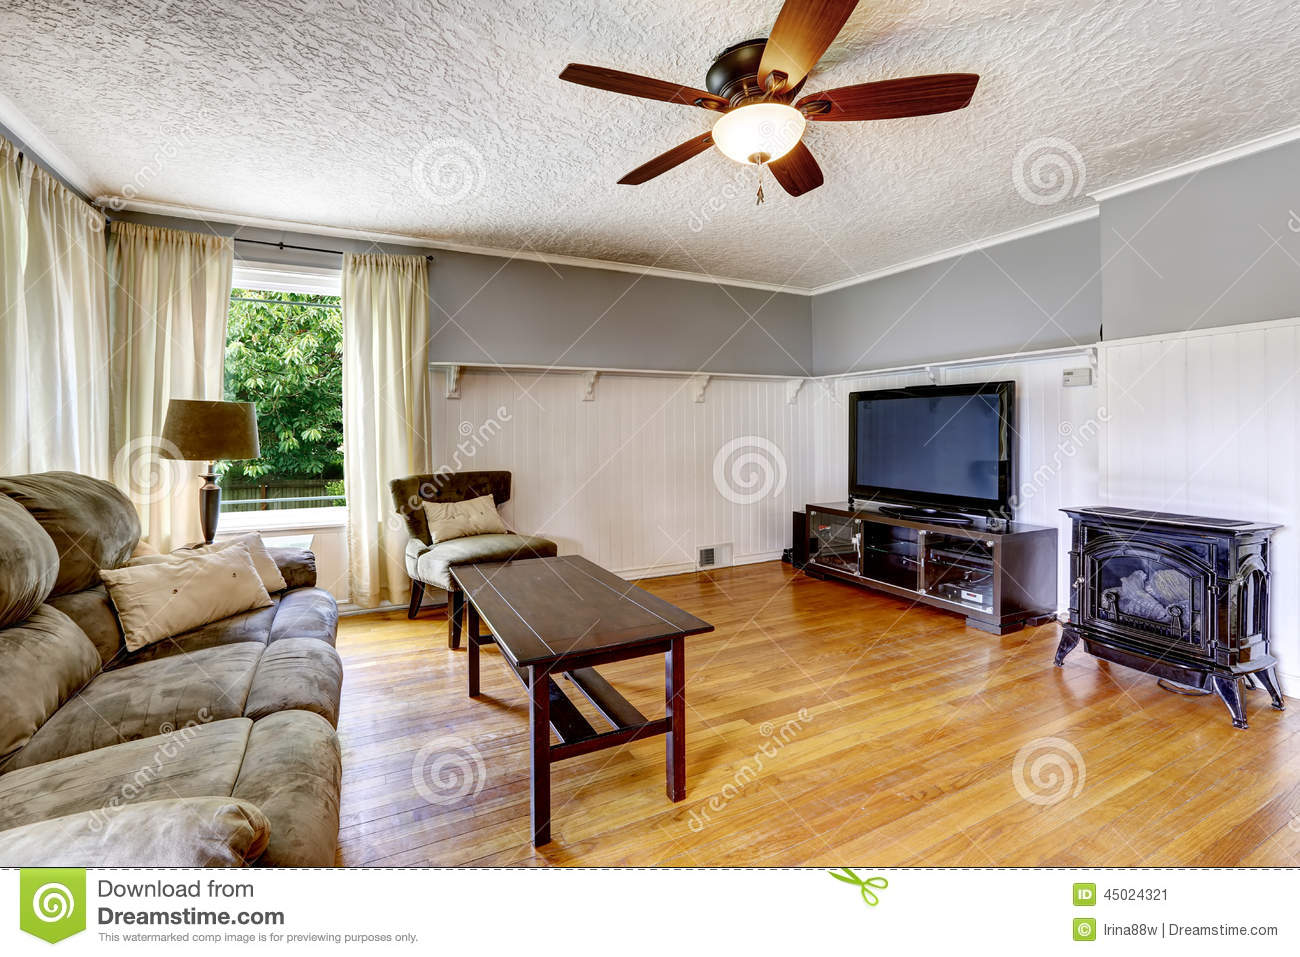 Living Room Interior In Old House Comfortable Sofa With Wooden Coffee